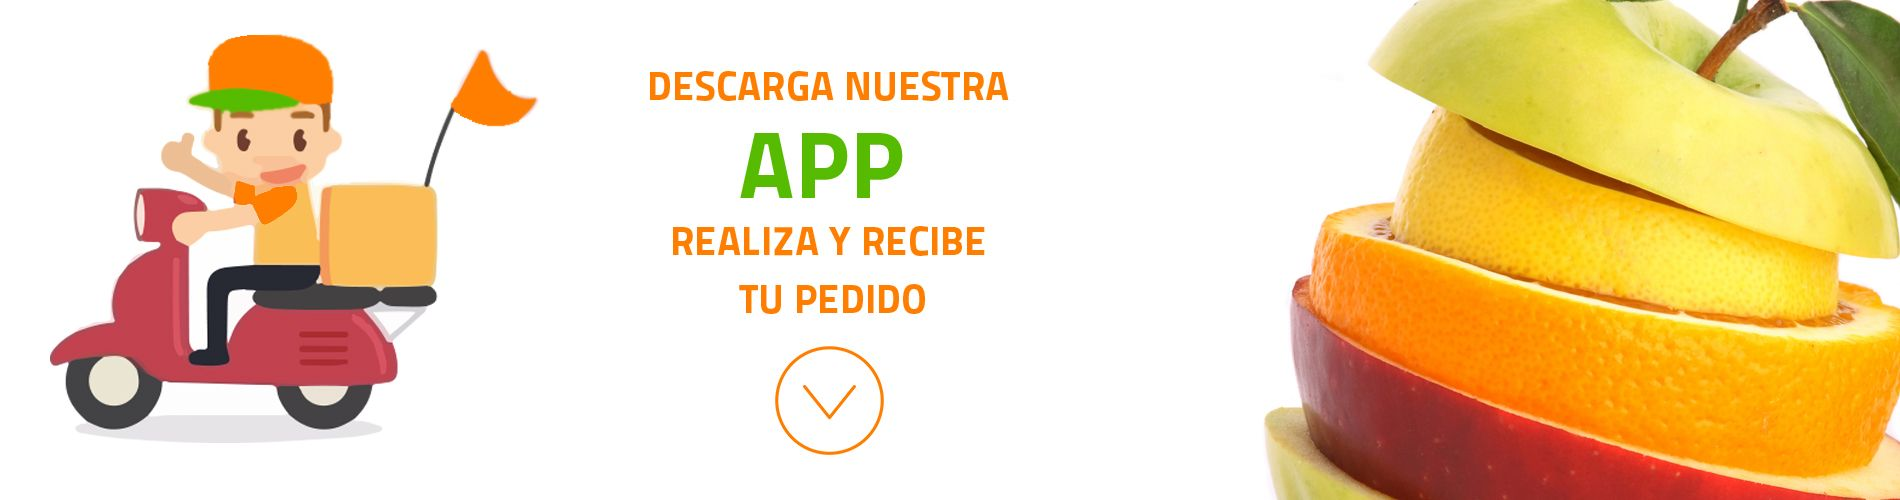 Descarga la App de Merfrucor